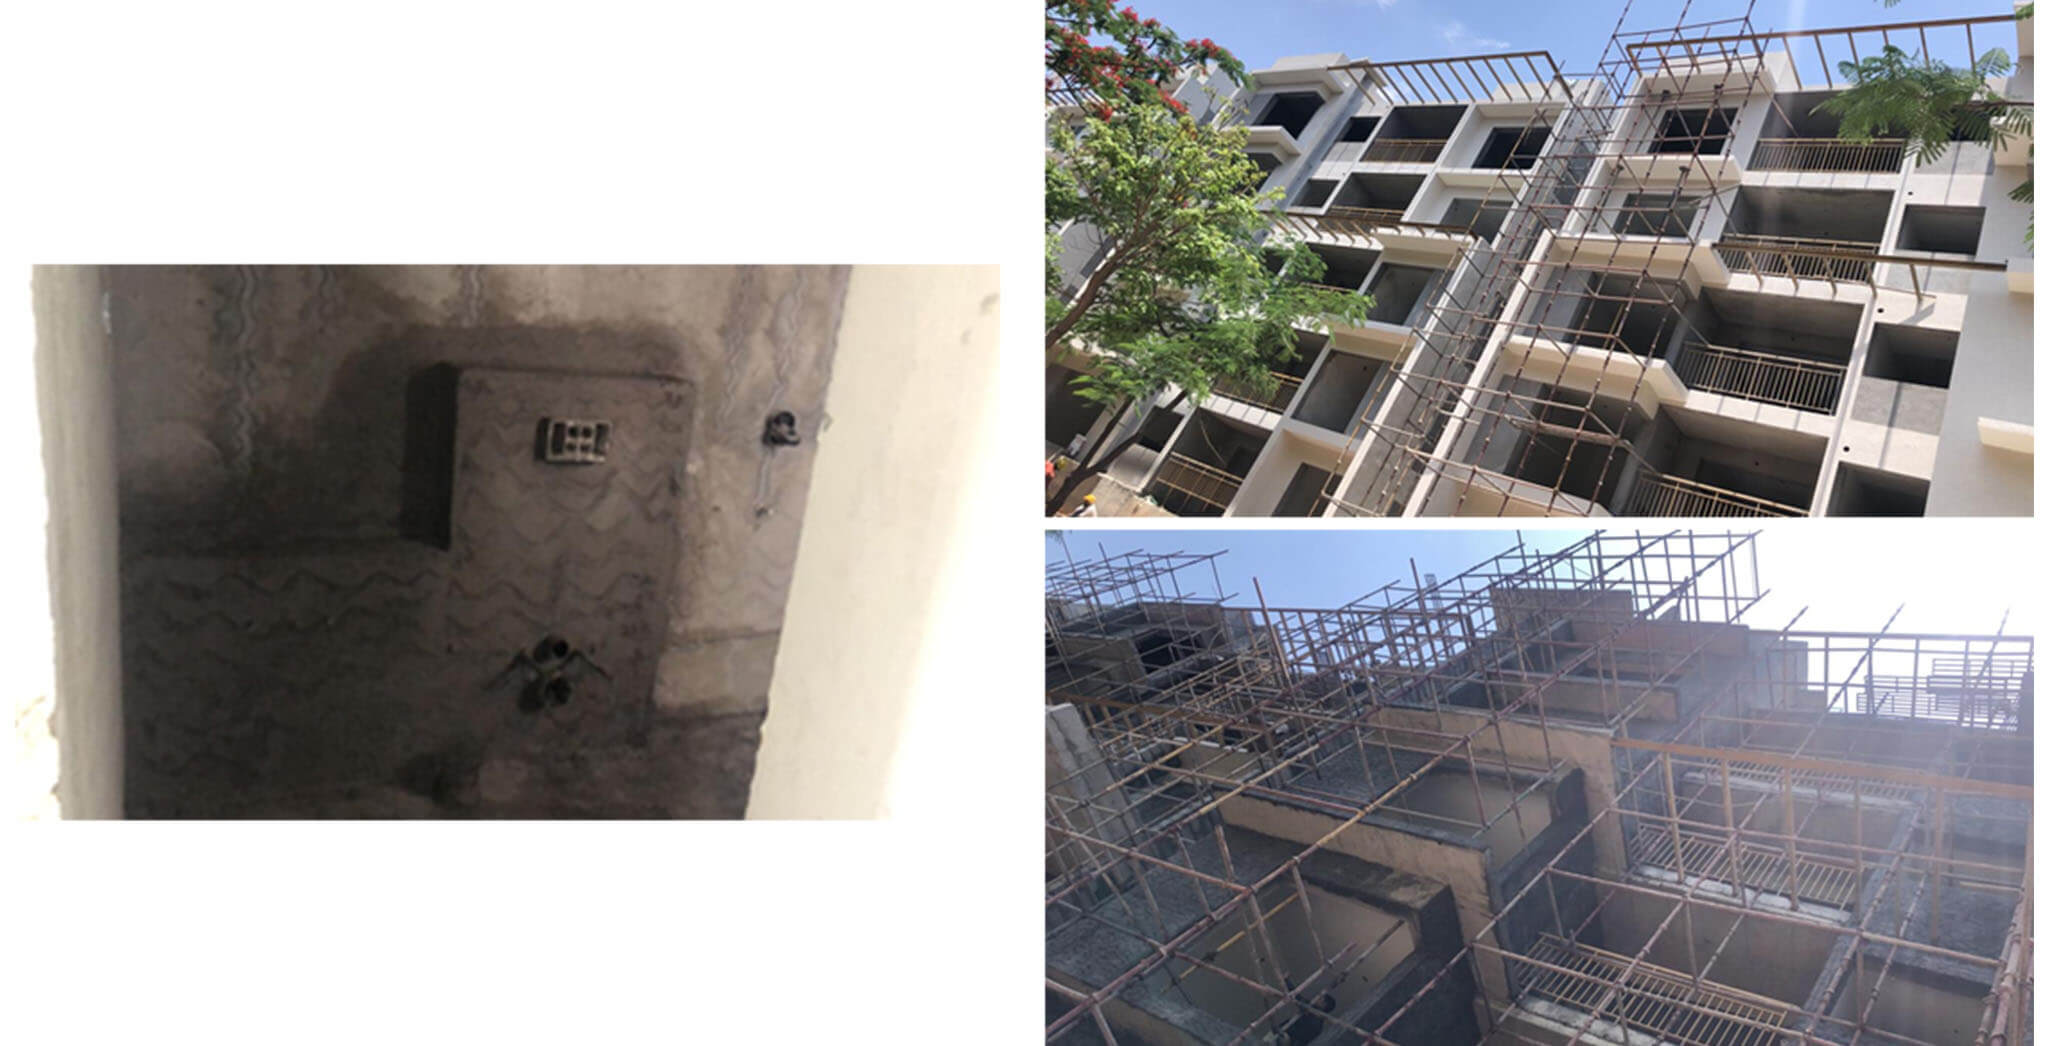 May 2021 - M Block: Up to 3rd floor 2-coats putty, North elevation external texture, and Up to 3rd floor ledge wall plastering work completed; South elevation pergola works completed and external plastering, 4th floor internal plastering work-in-progress.